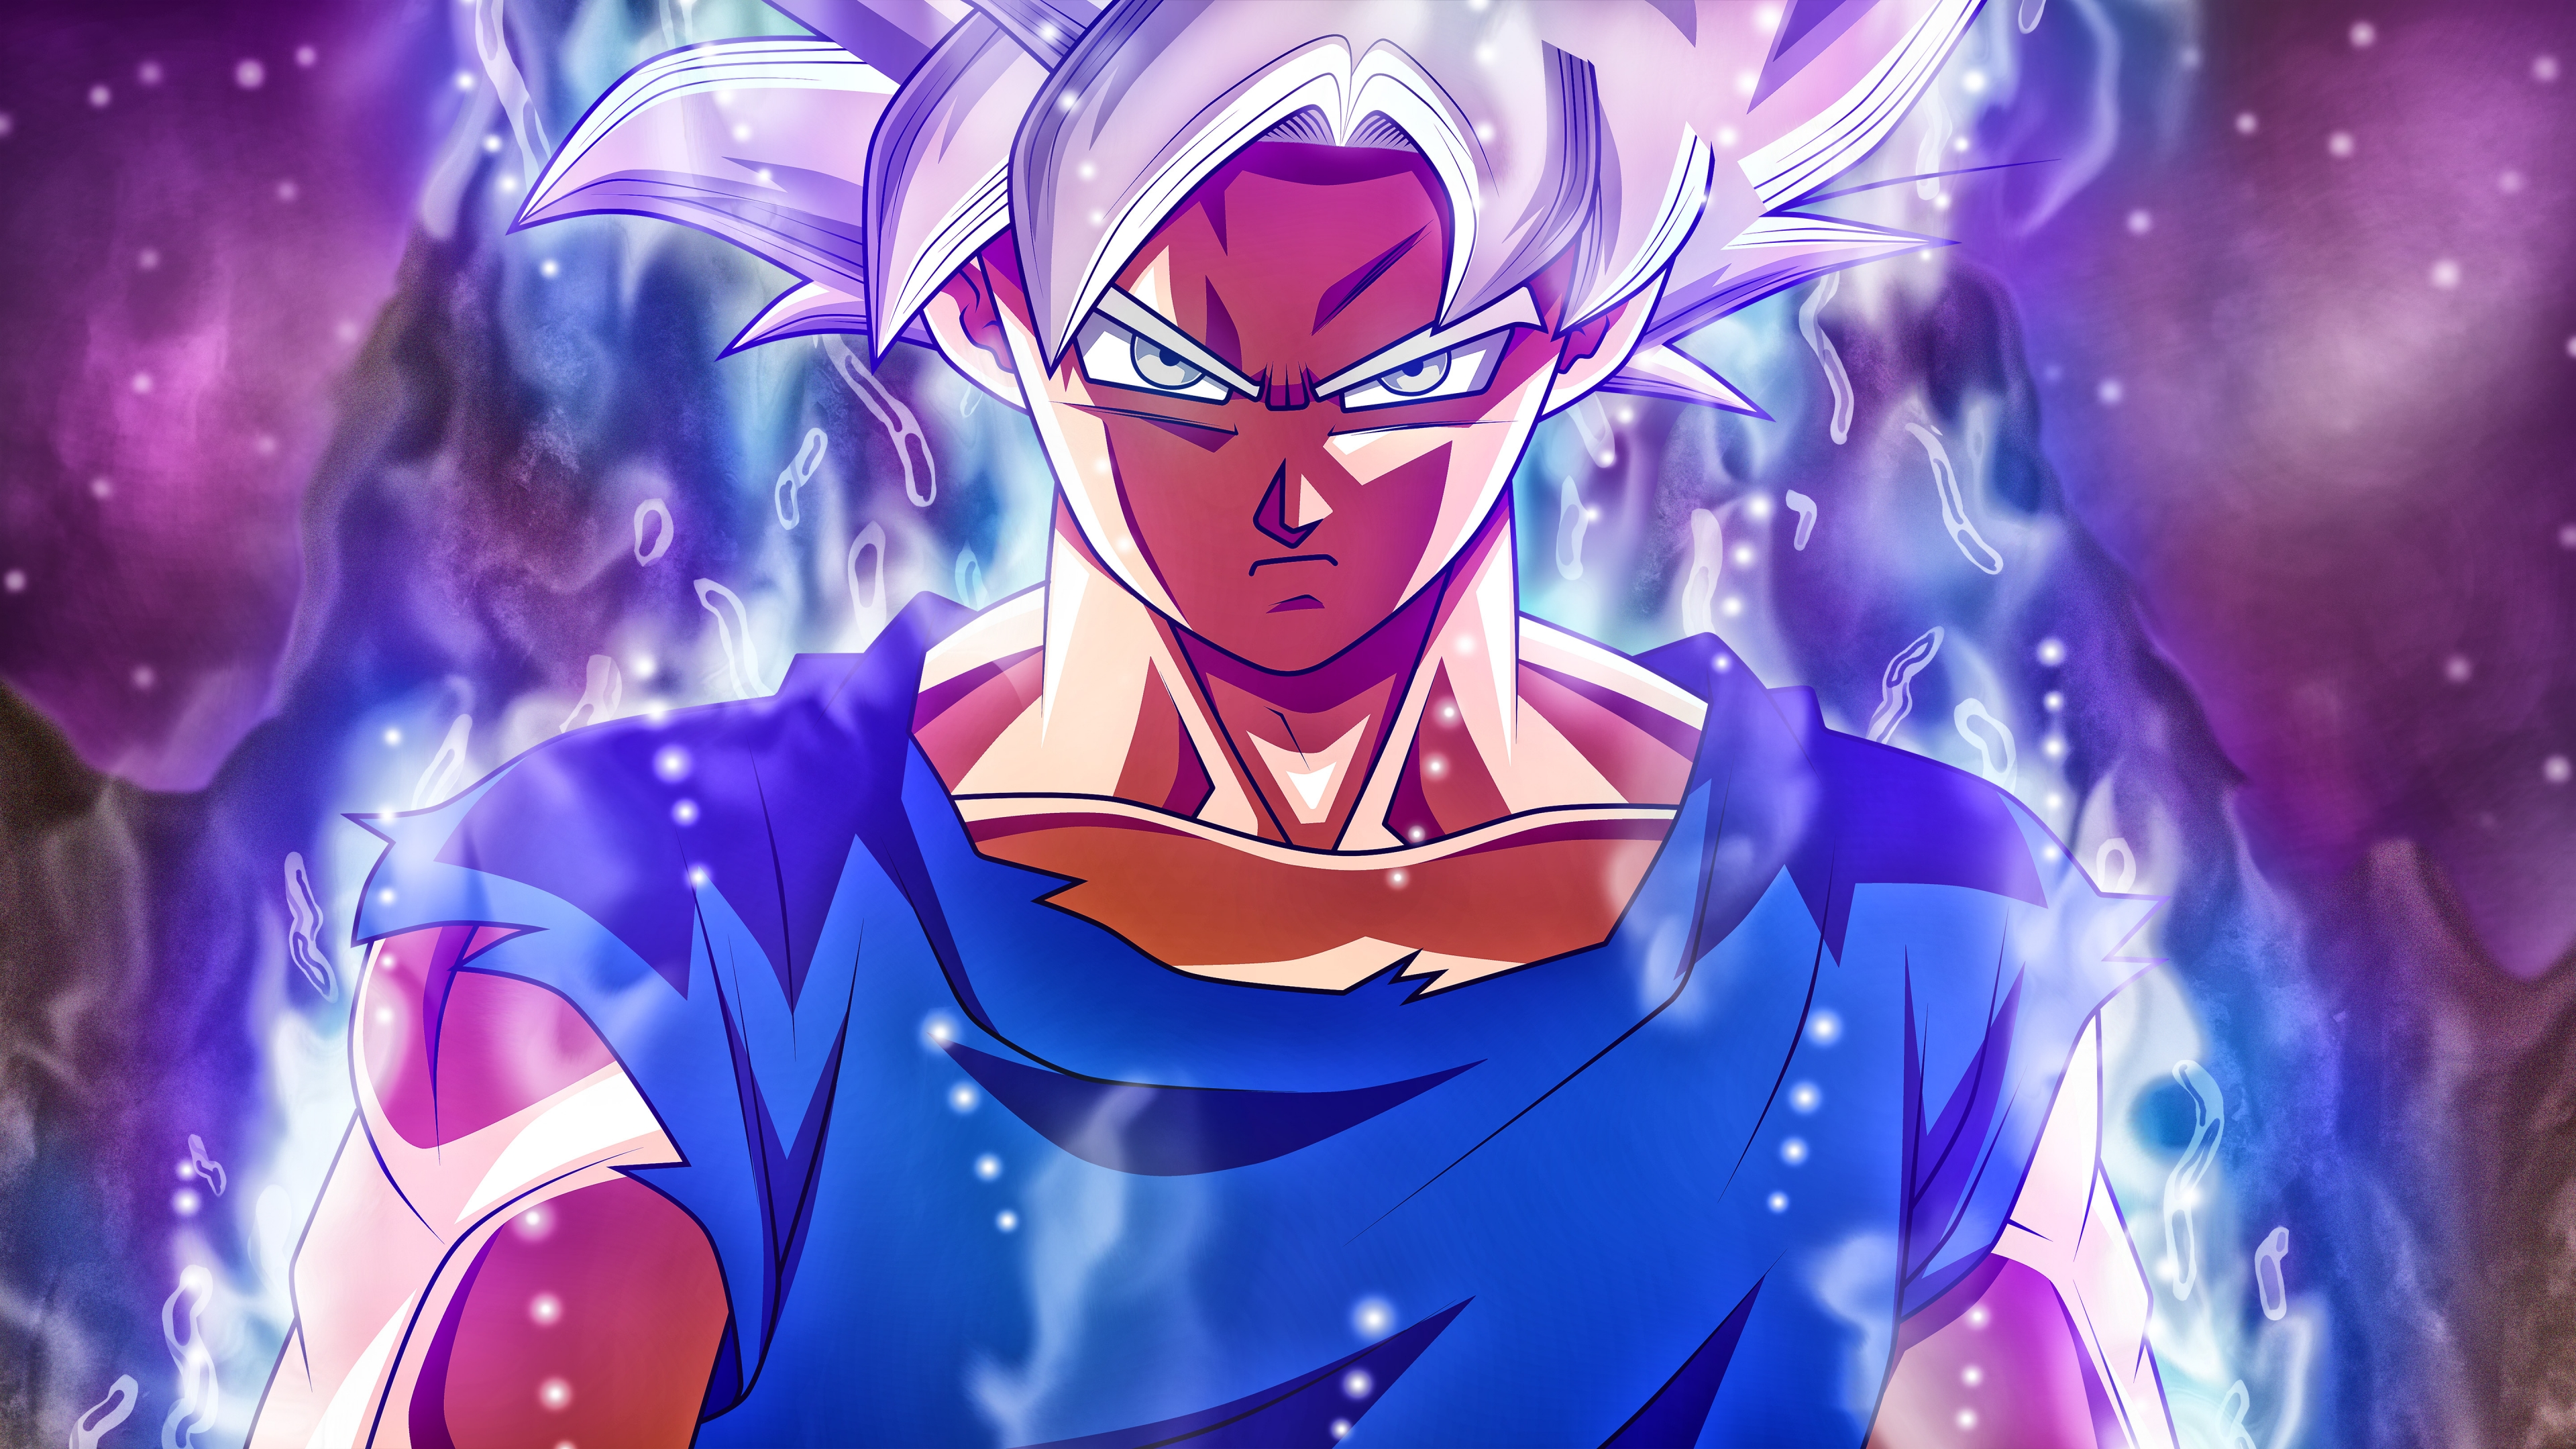 Goku Super Saiyan Silver Mastered Ultra Instinct Dragon Ball